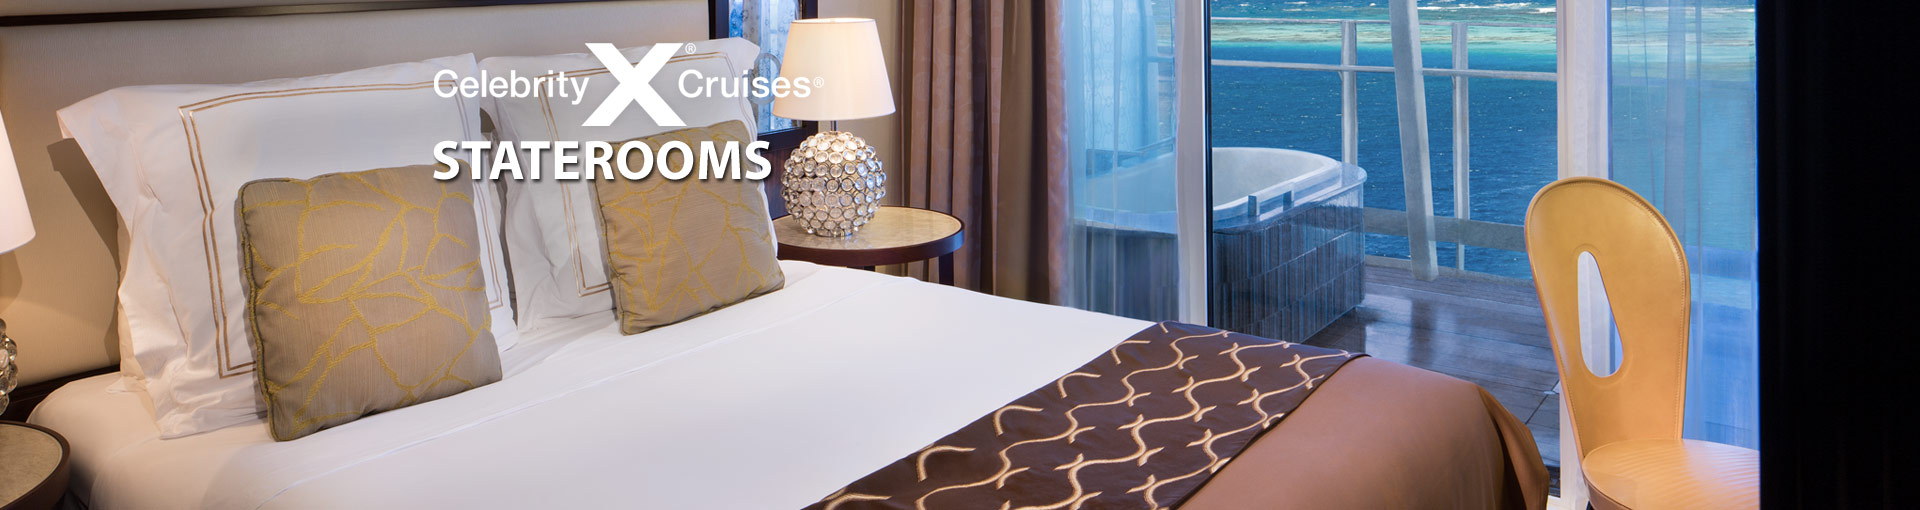 Celebrity Cruises Staterooms